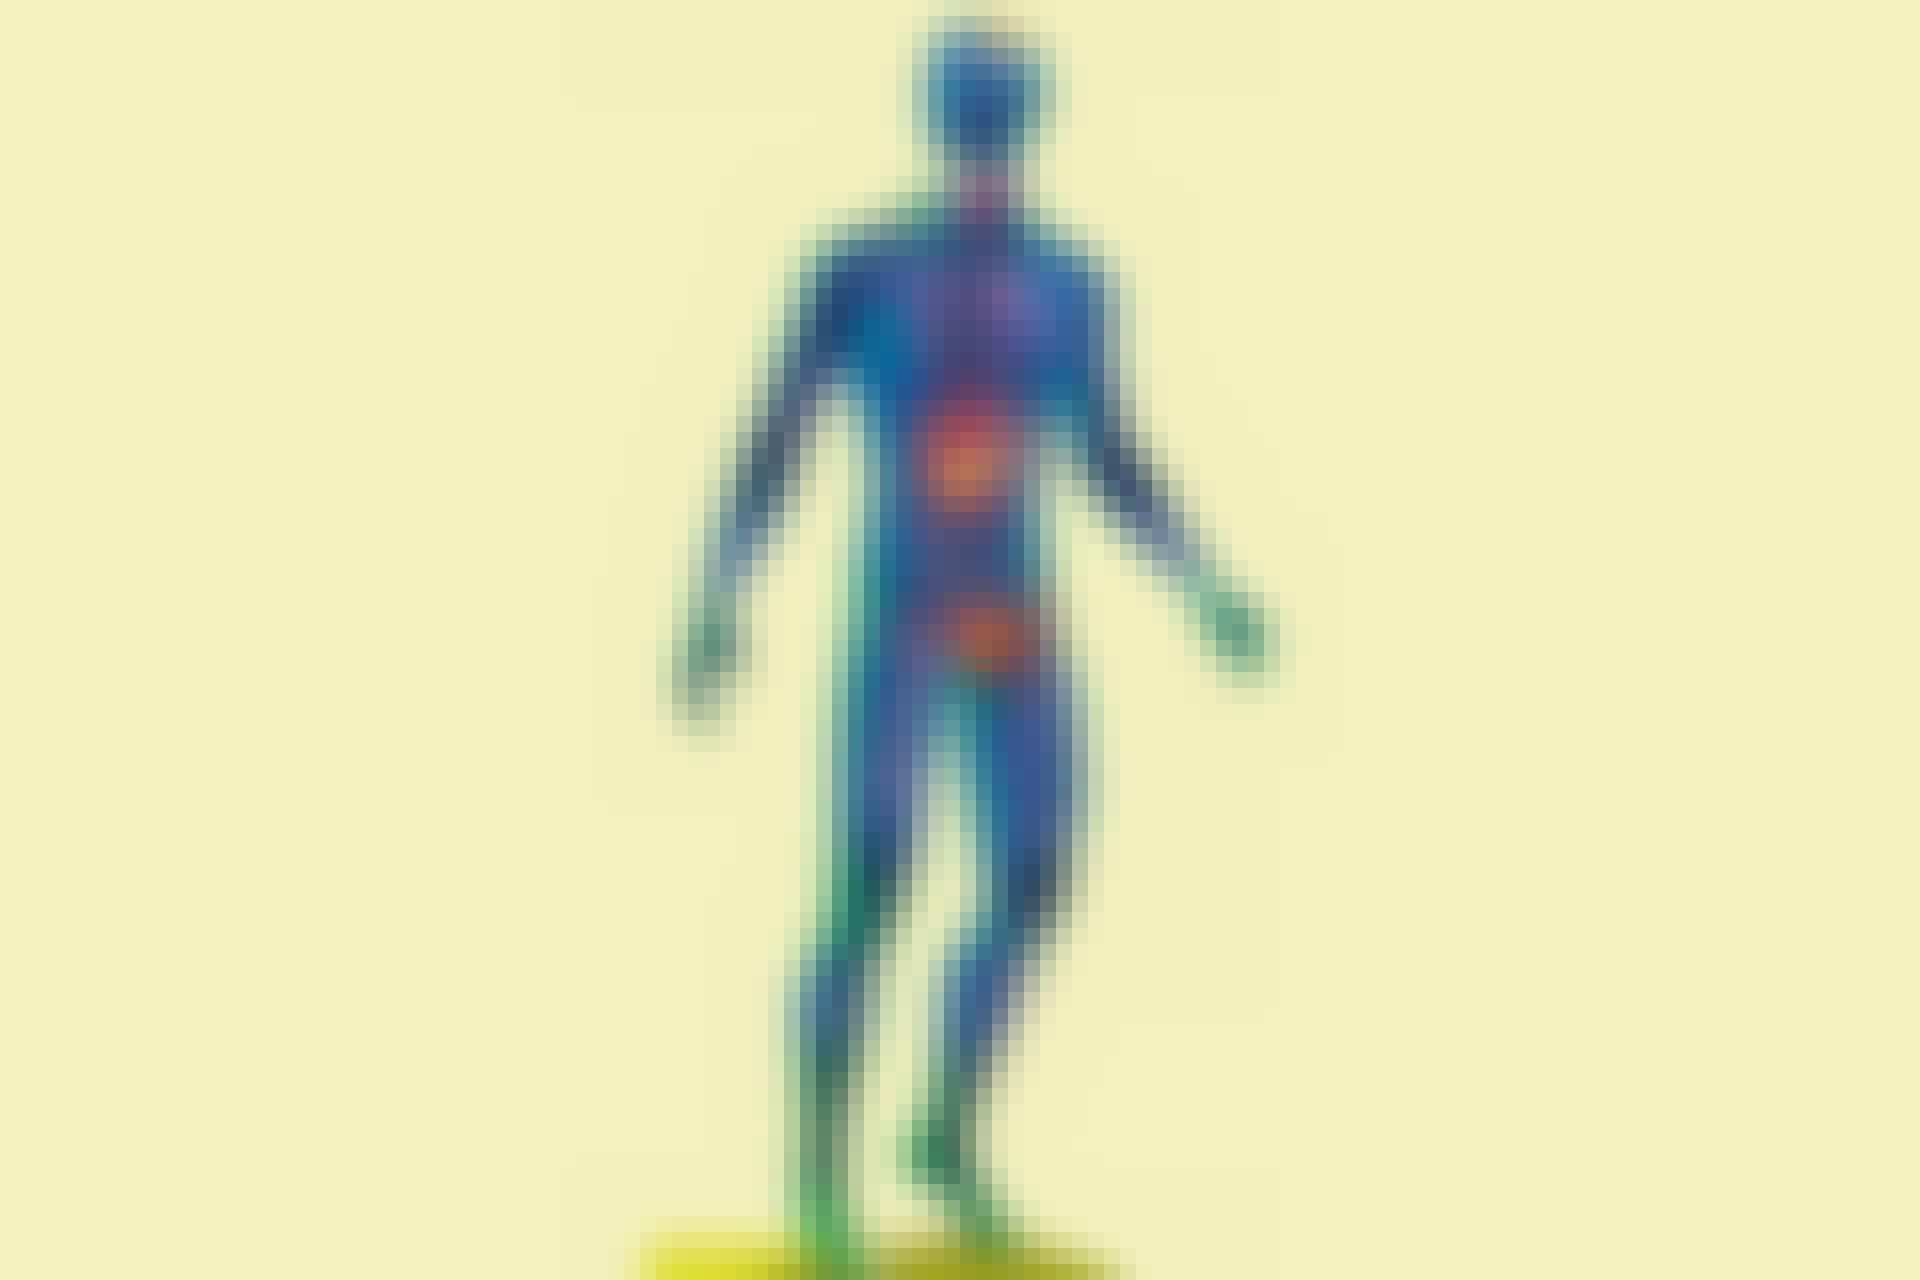 Man with highlighted organs